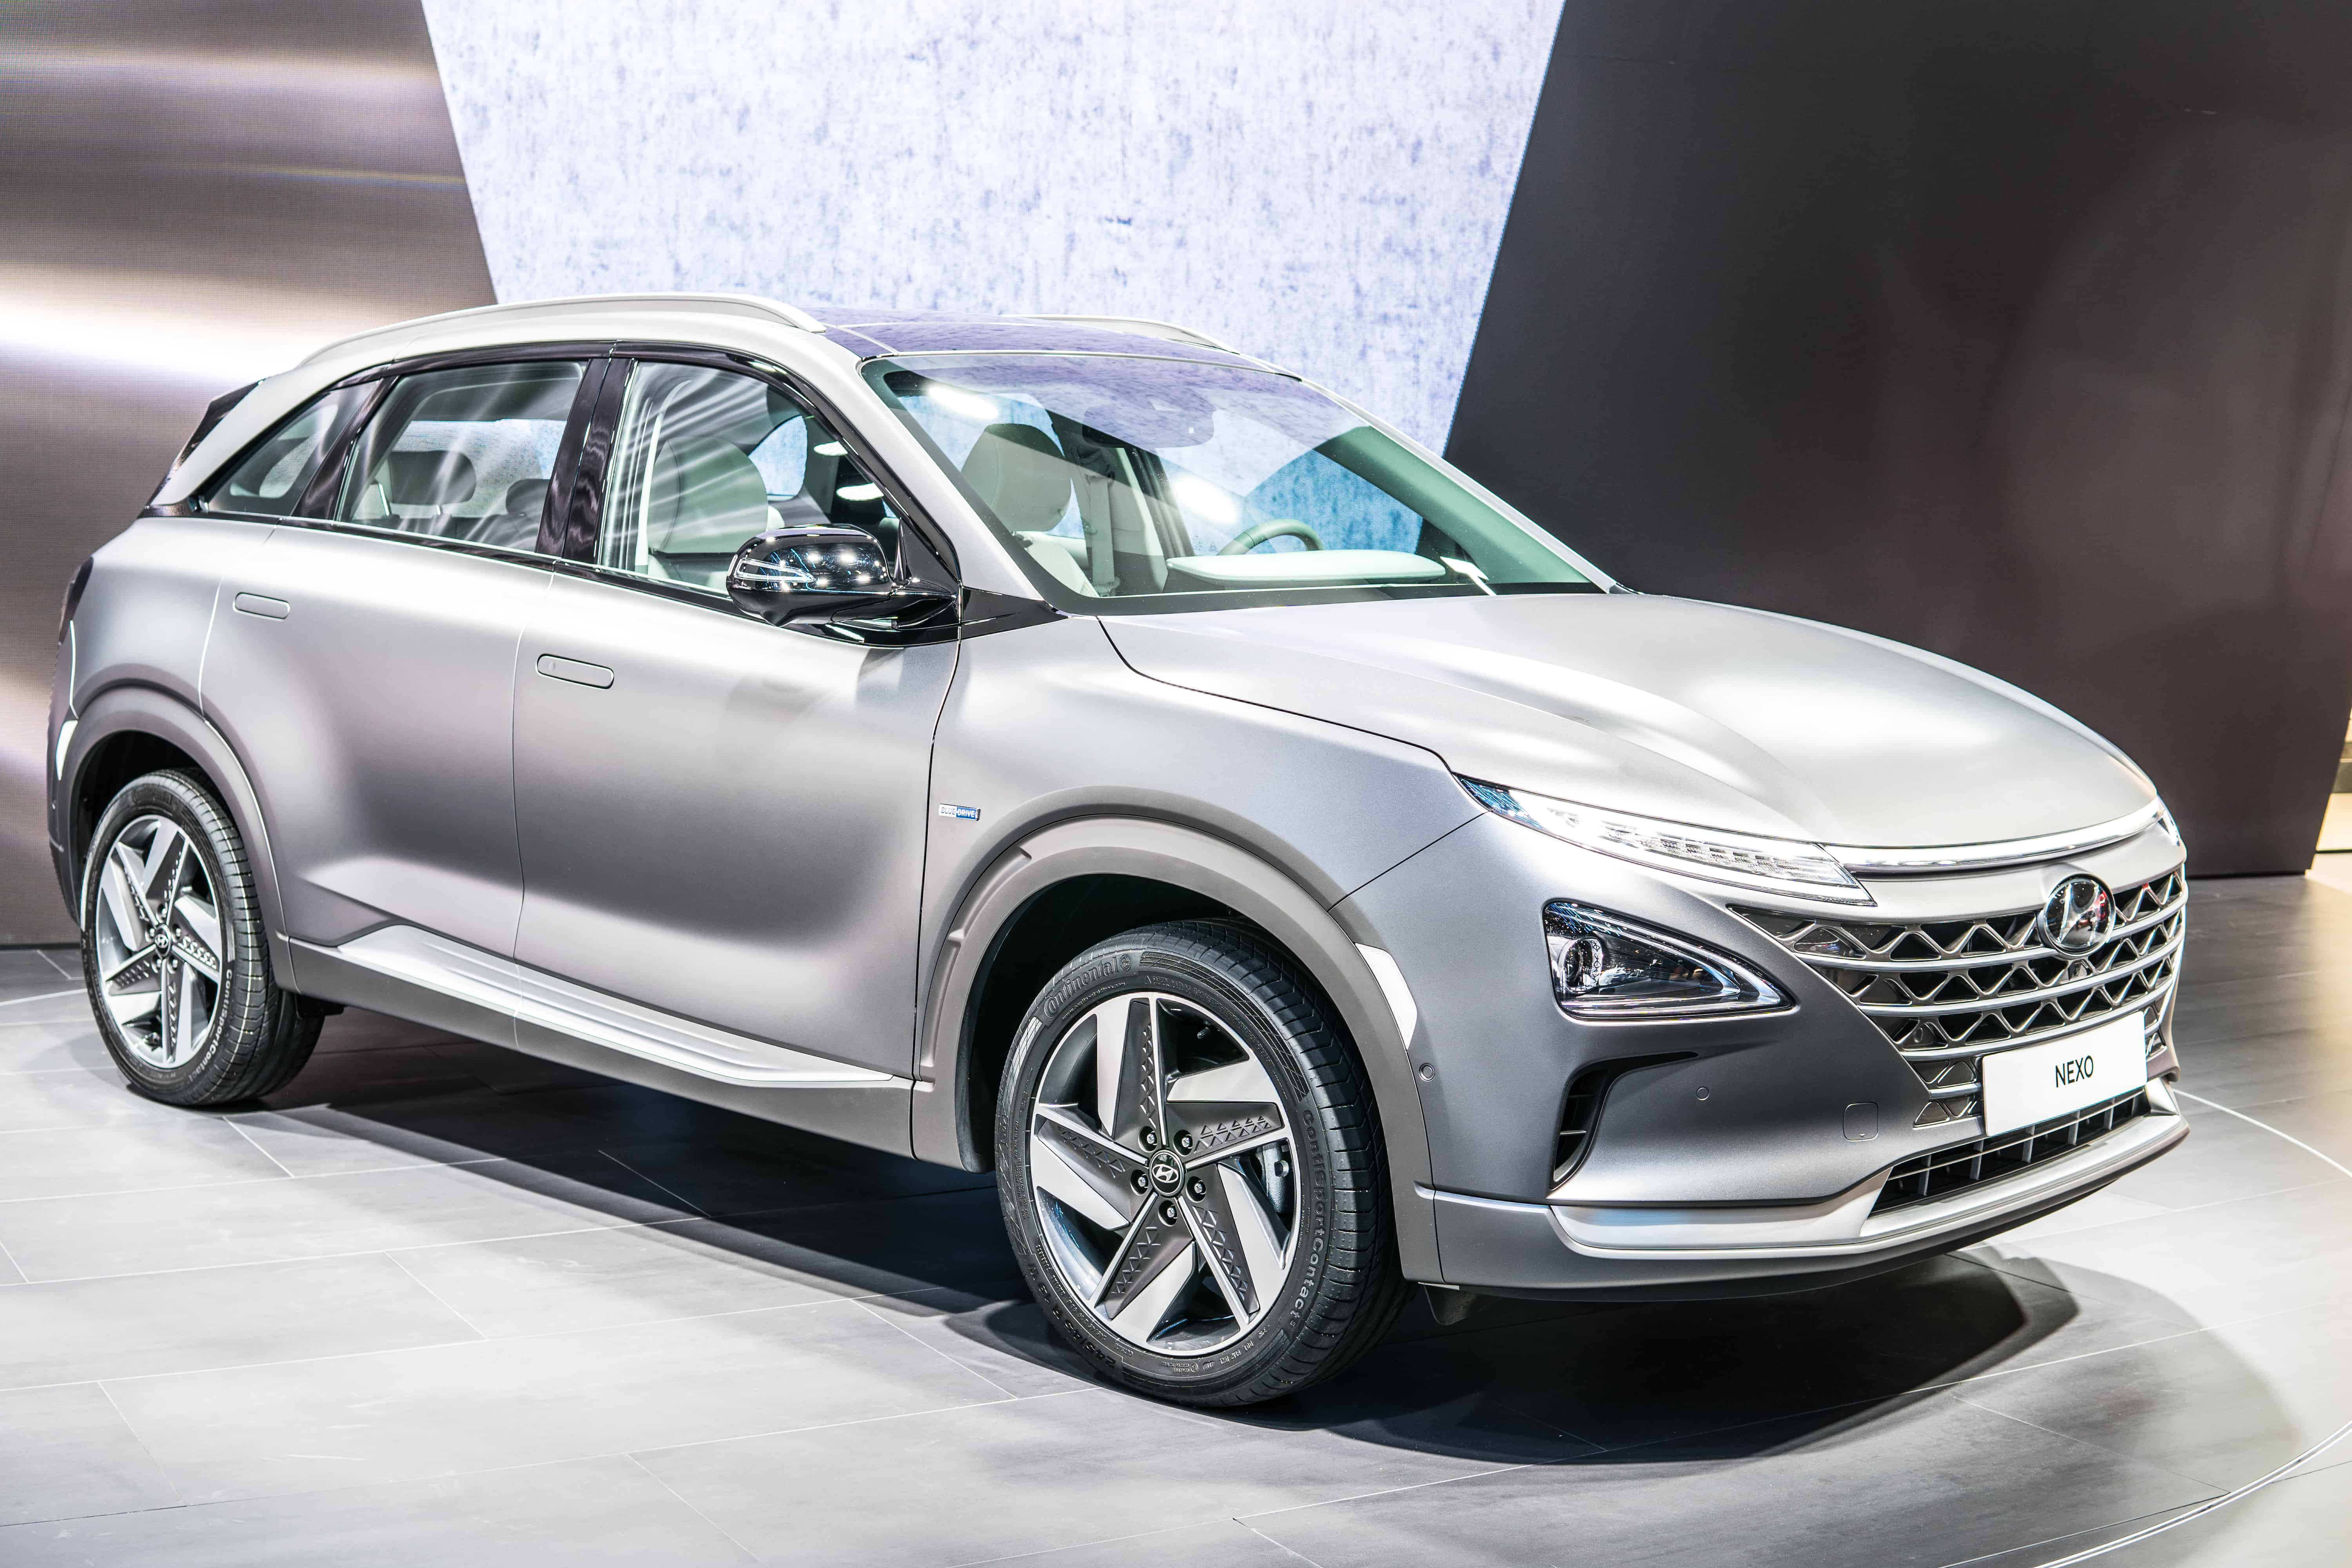 Crash Risk Prompts Hyundai to Recall Nexo and Sonata Vehicles